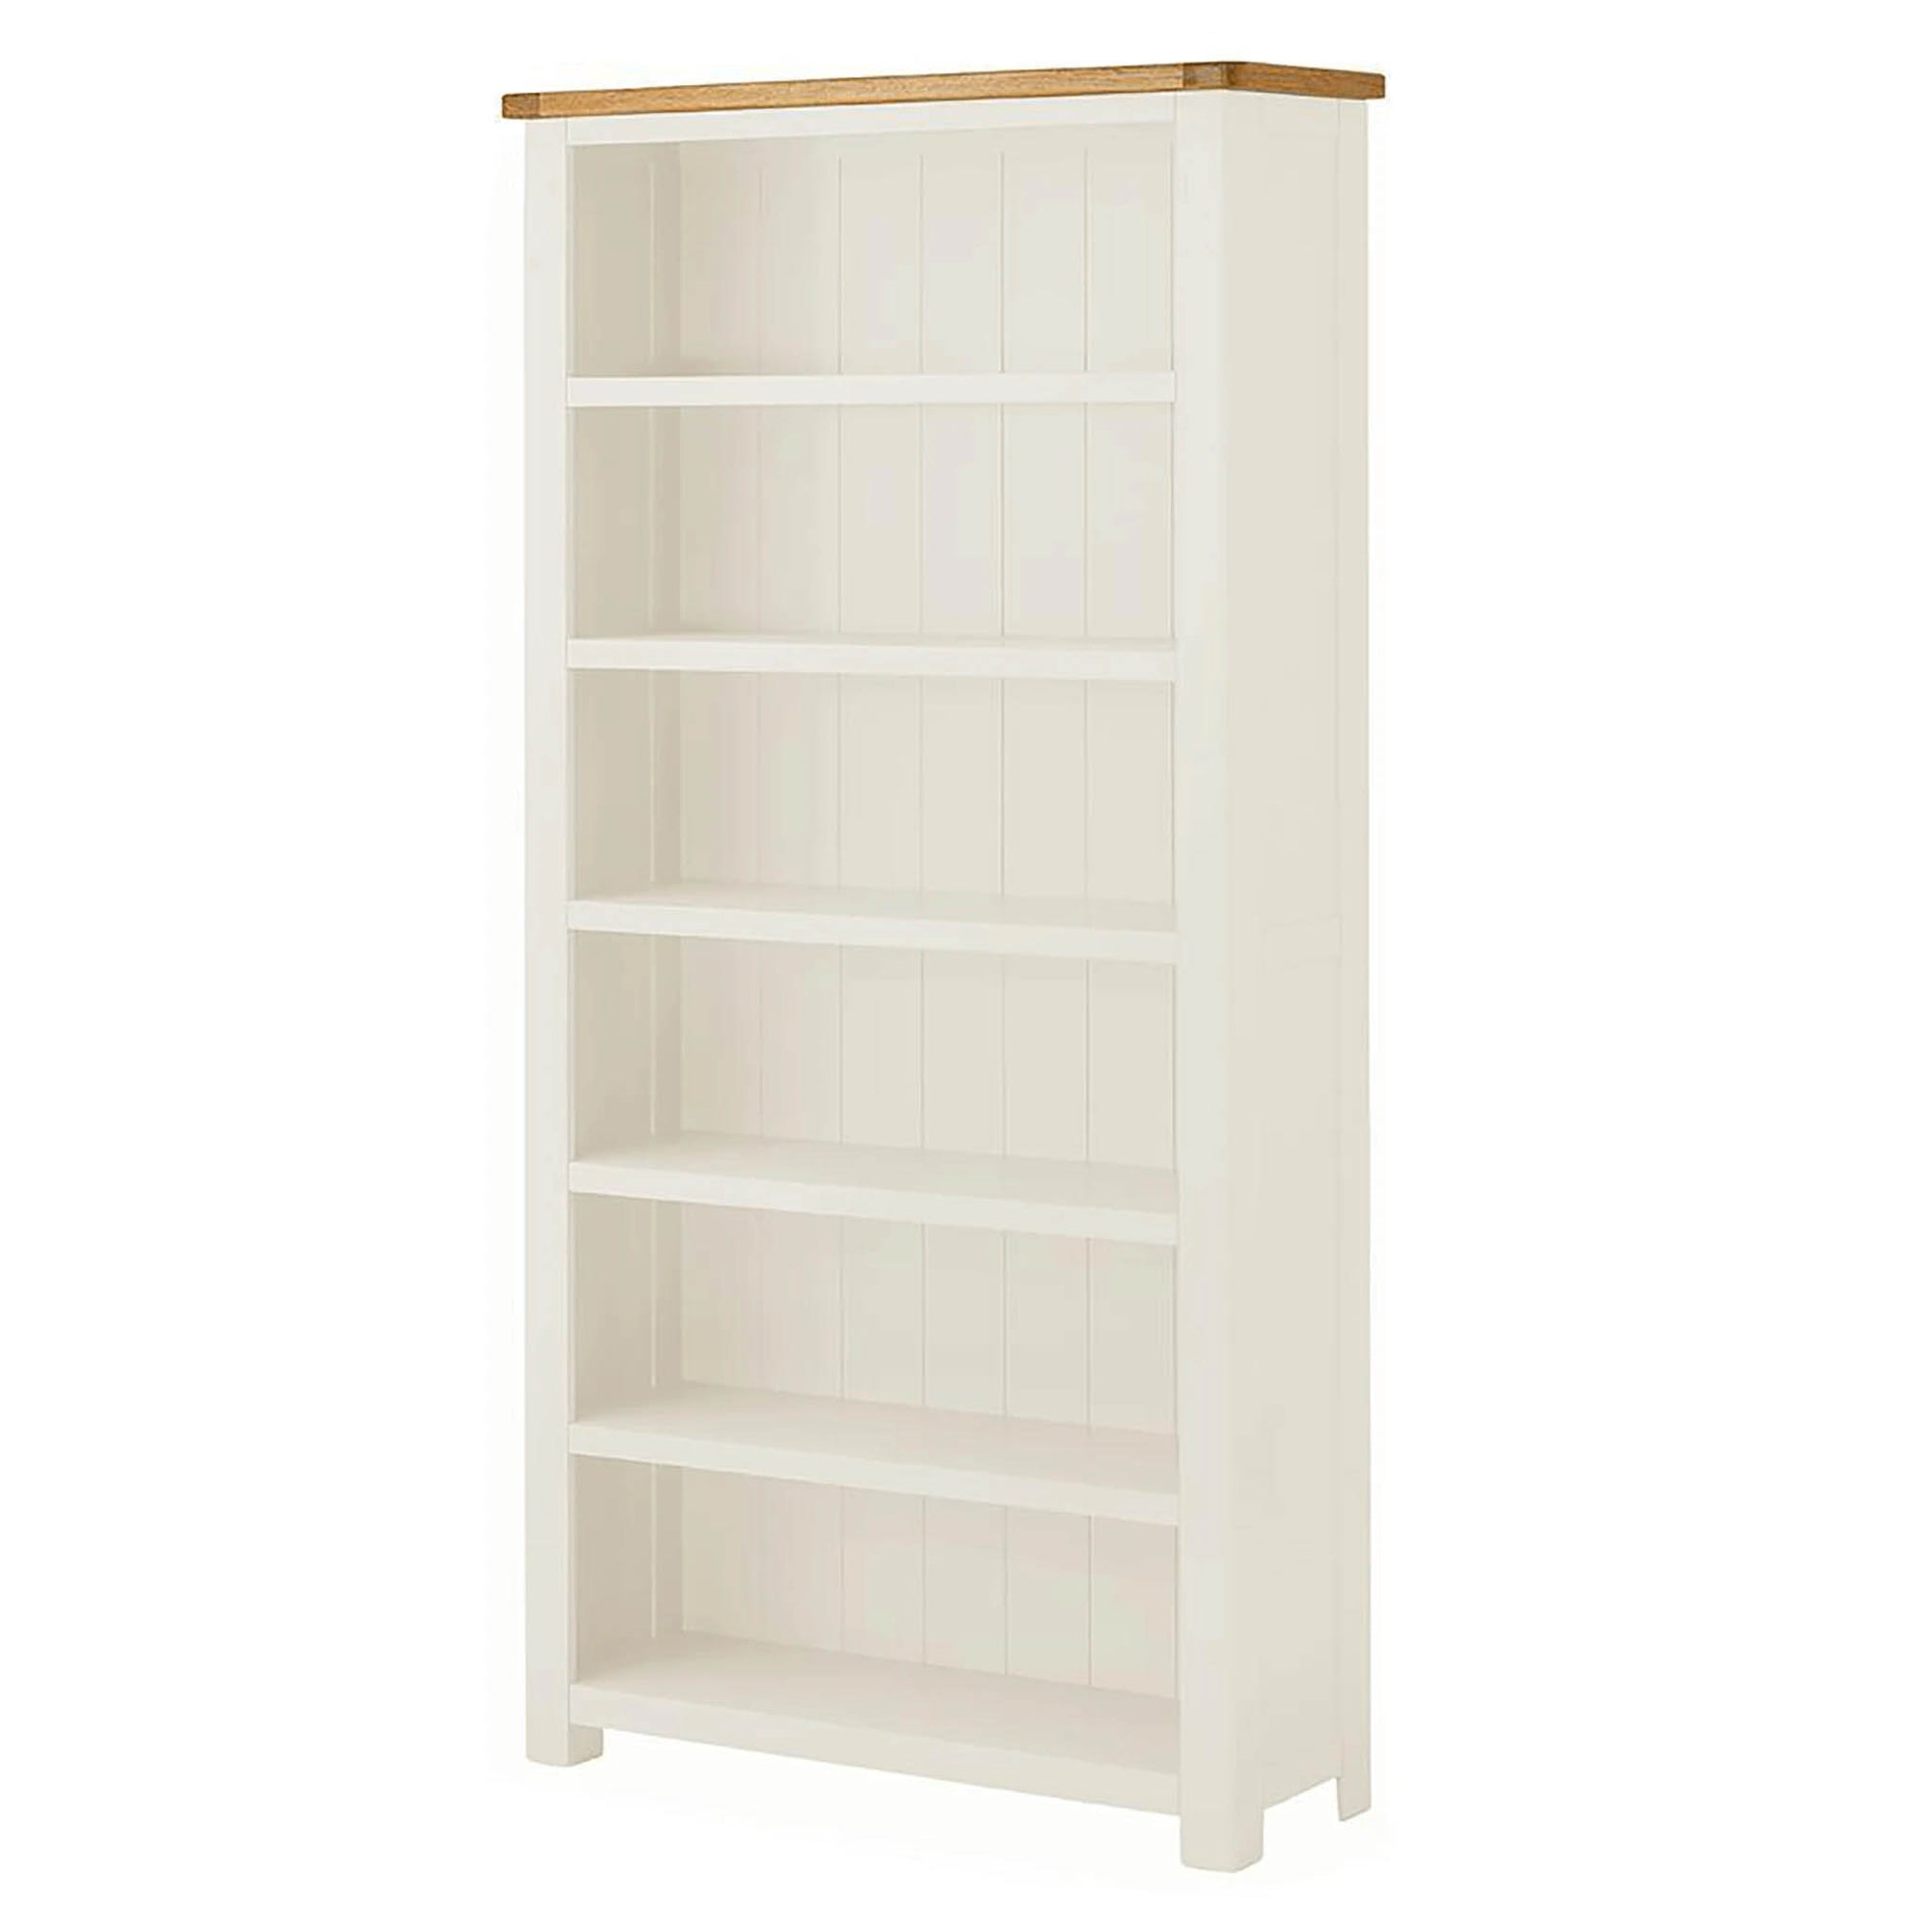 The Padstow White Large Wooden Bookcase with Oak Top from Roseland Furniture